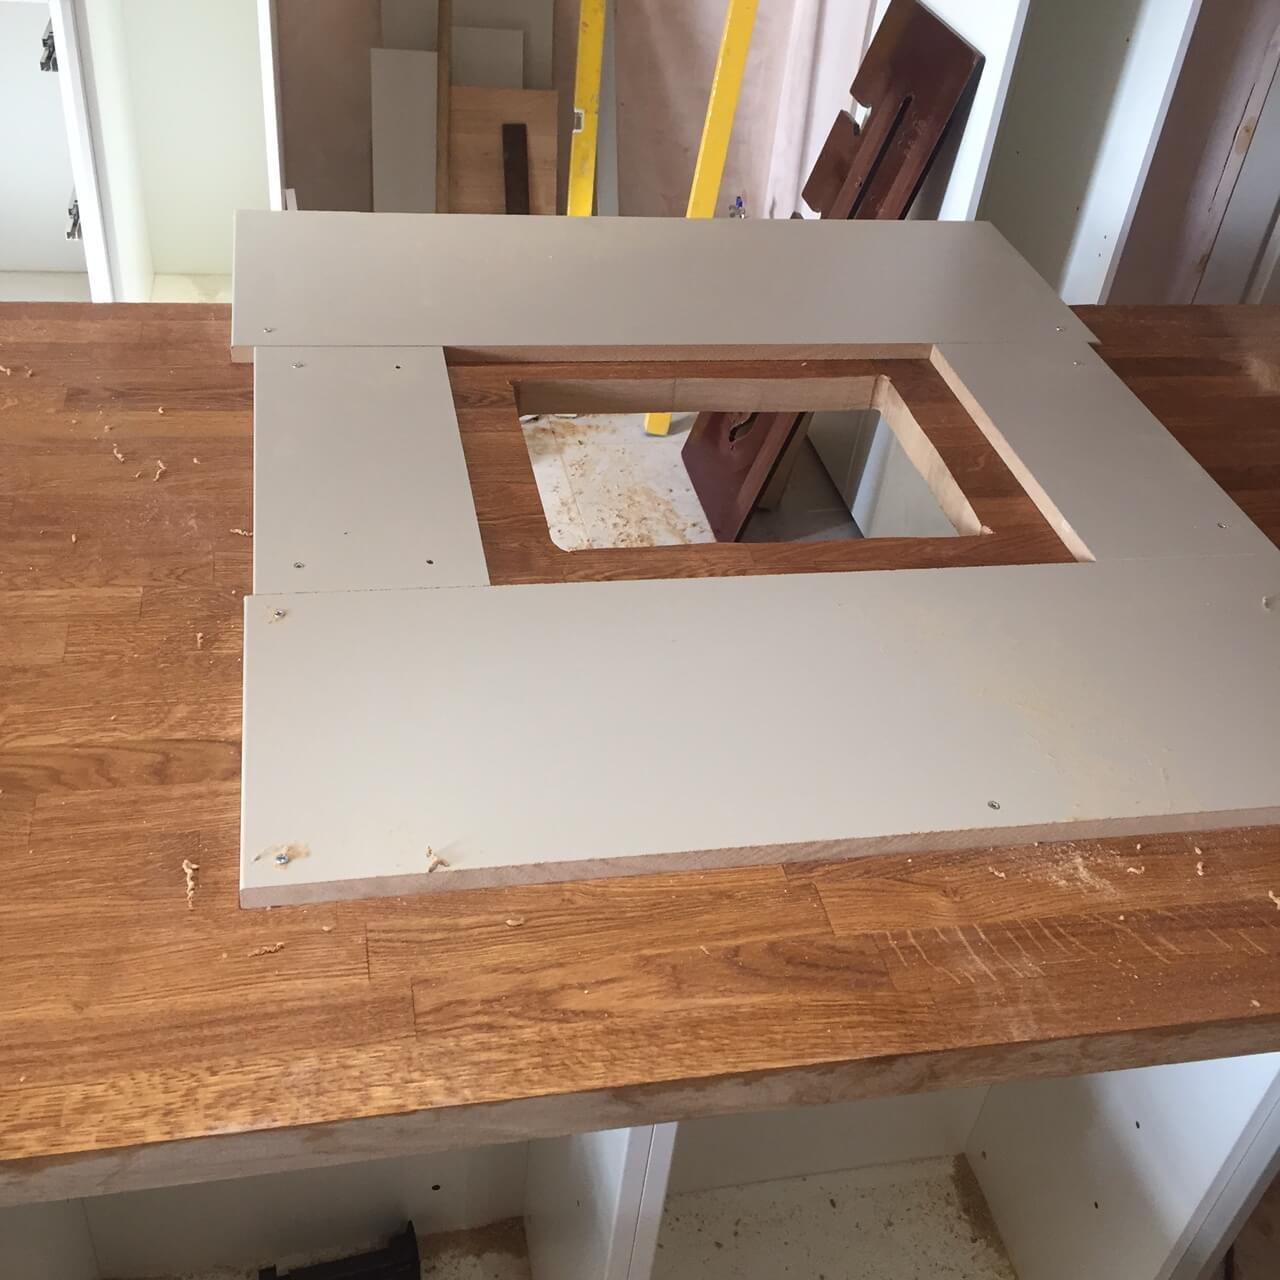 Jig To Cut Out Sink opening